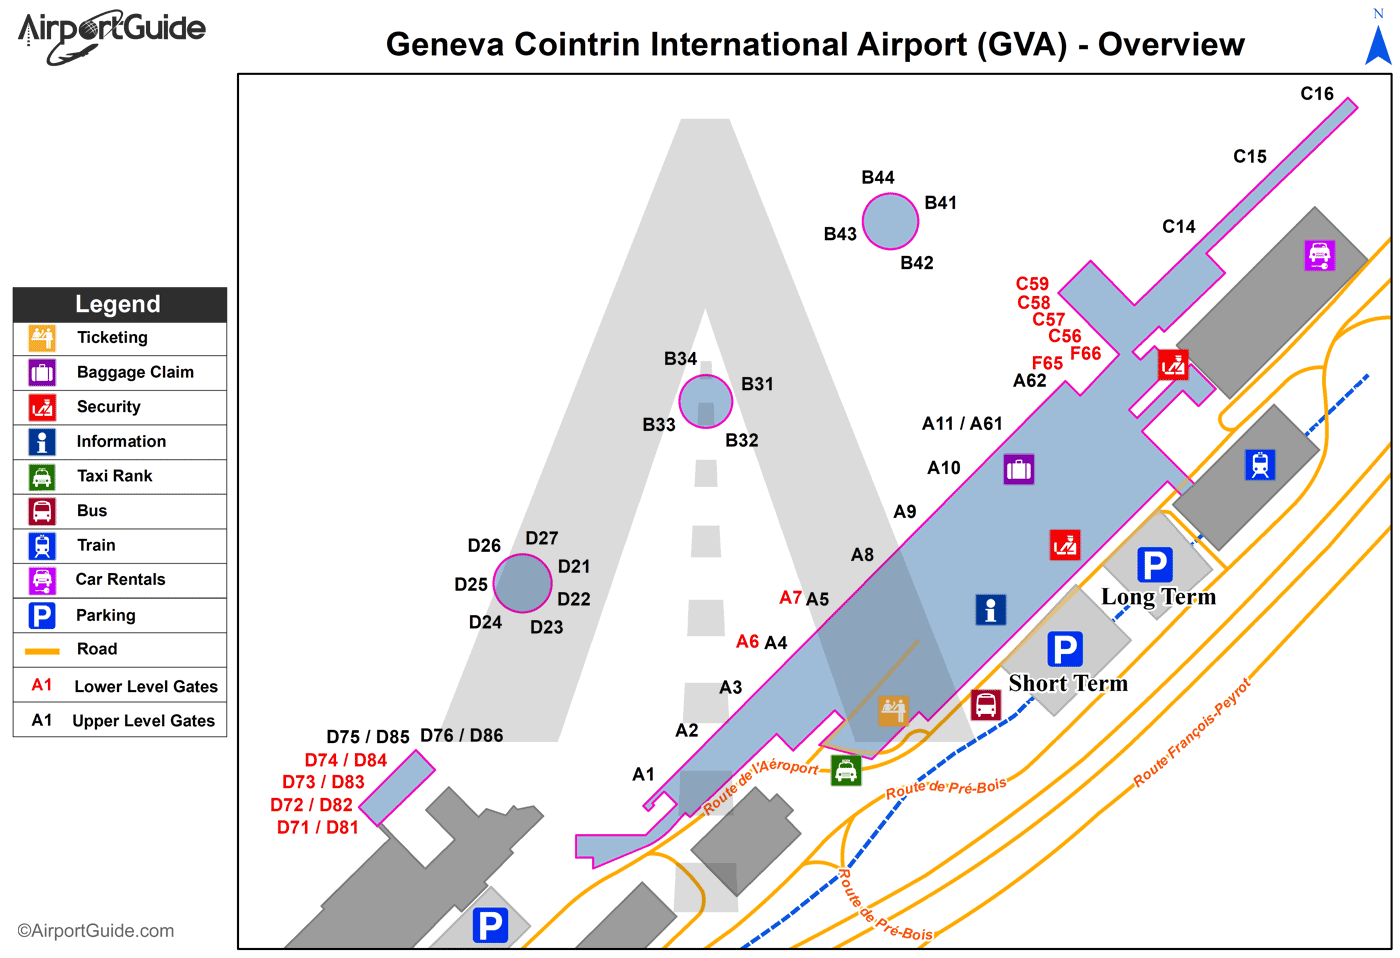 Geneva - Geneva Cointrin International (GVA) Airport Terminal Map - Overview